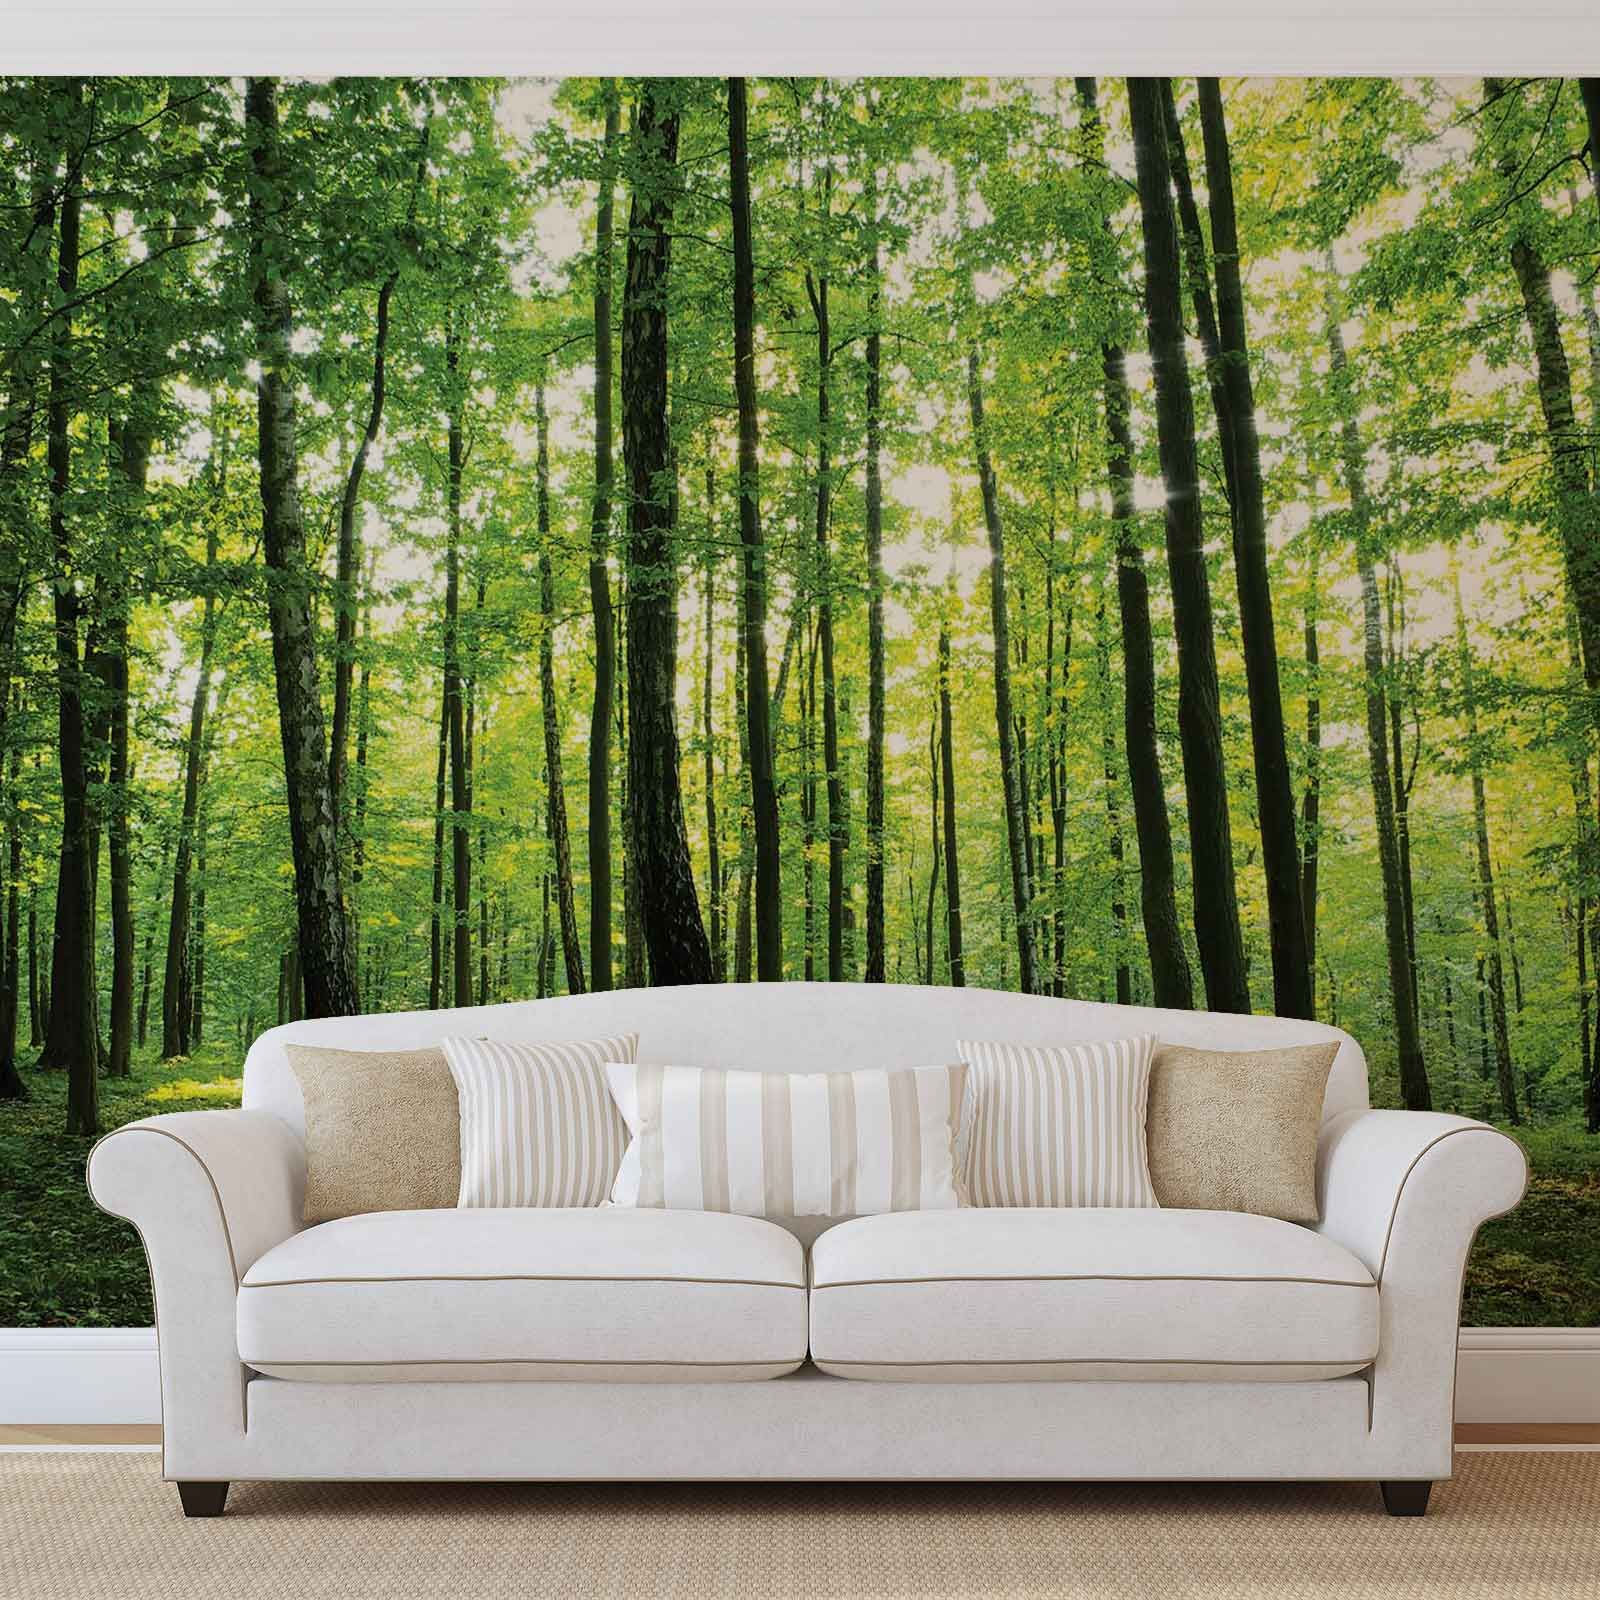 28 giant wall mural industrial cogs gears wall mural photo giant wall mural giant size wall mural wallpapers green forest